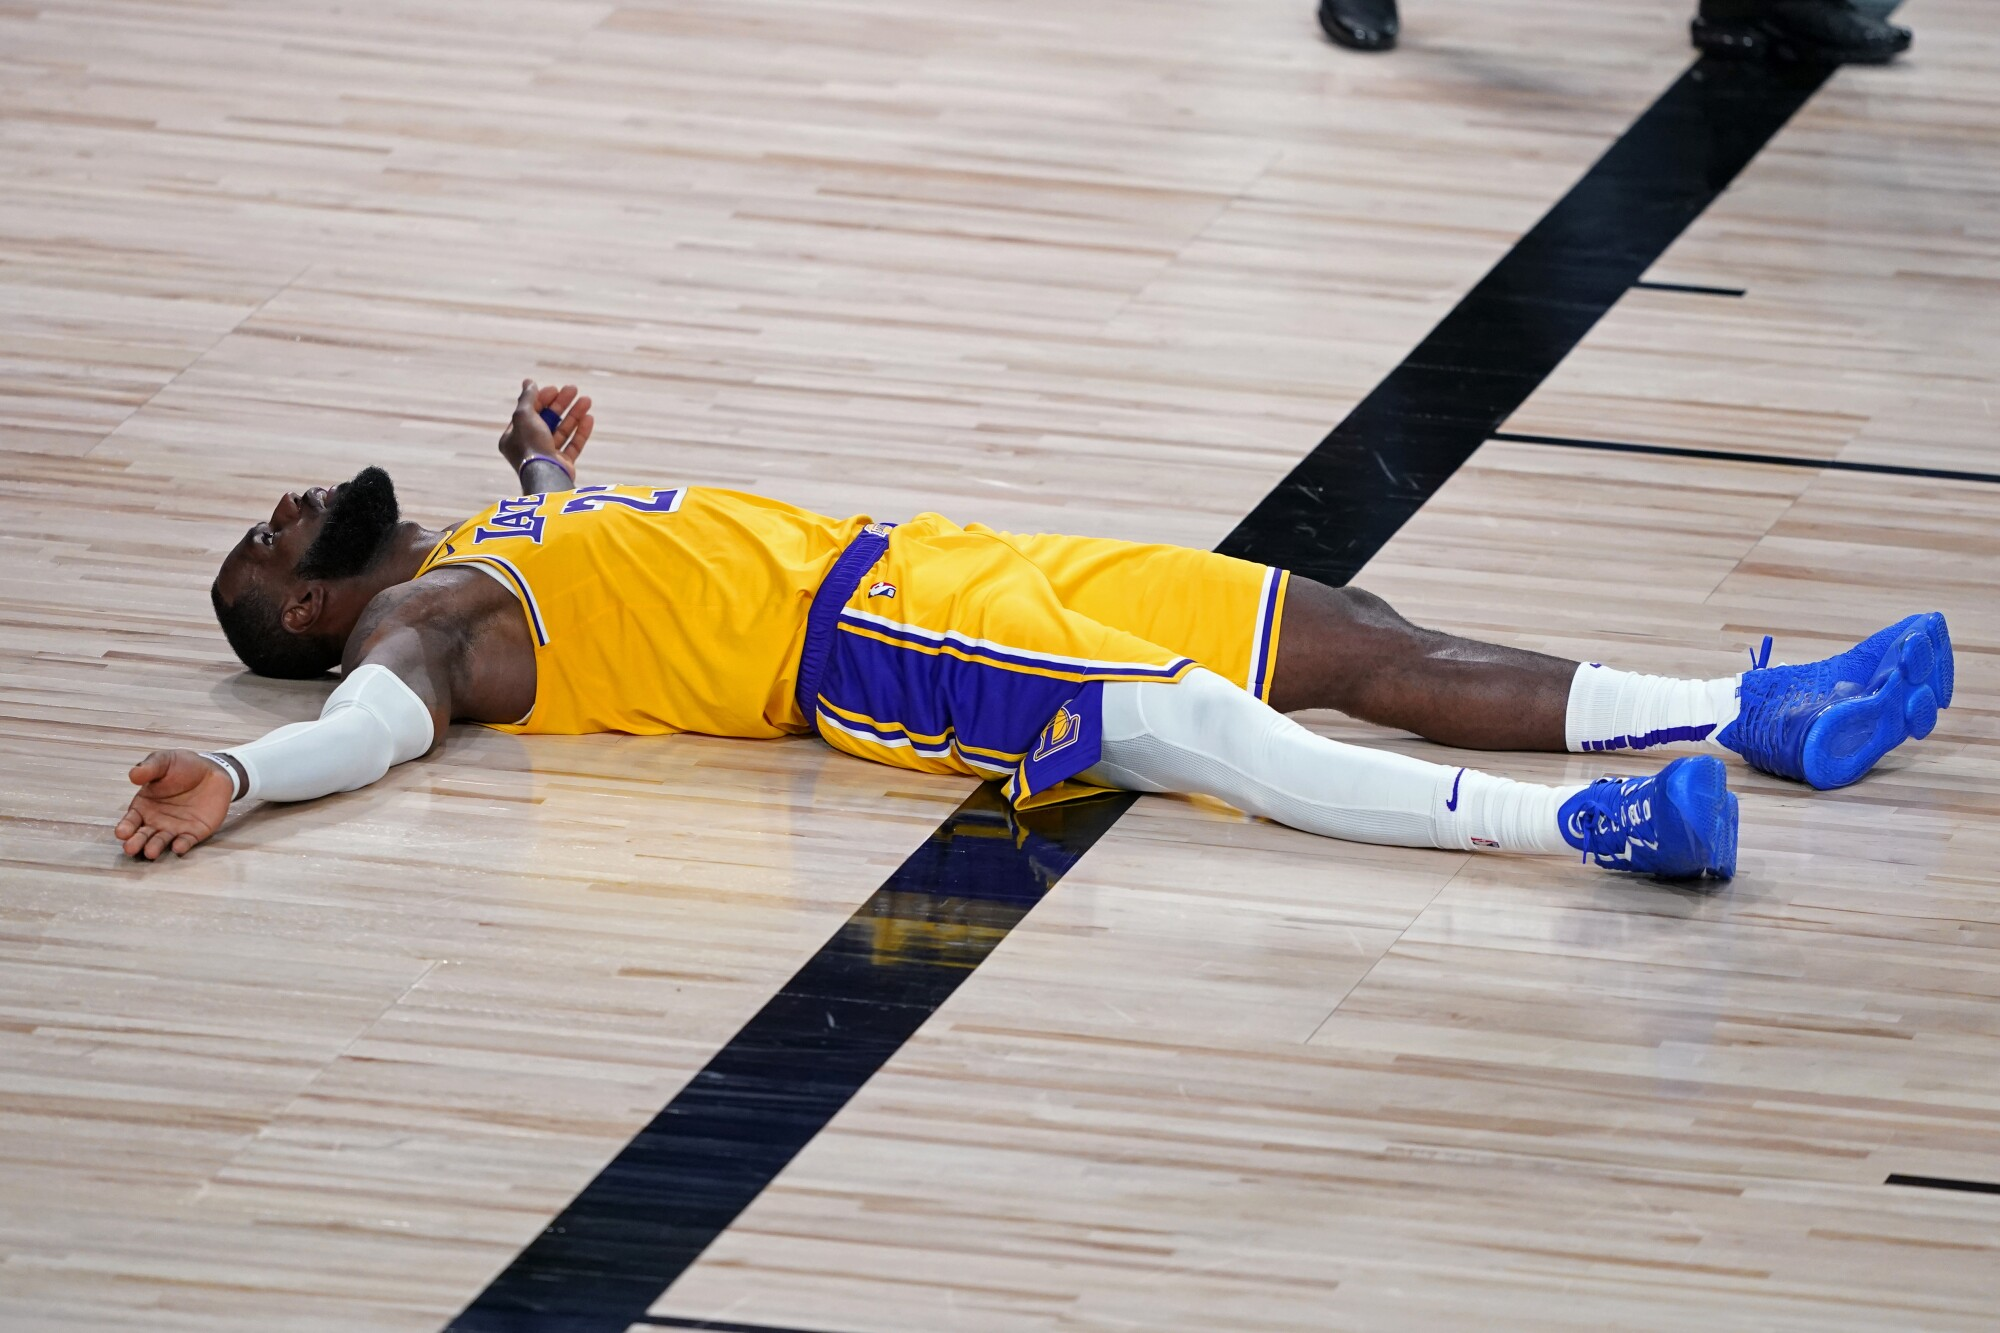 Lakers forward LeBron James lies on the court after committing a foul during the second half.